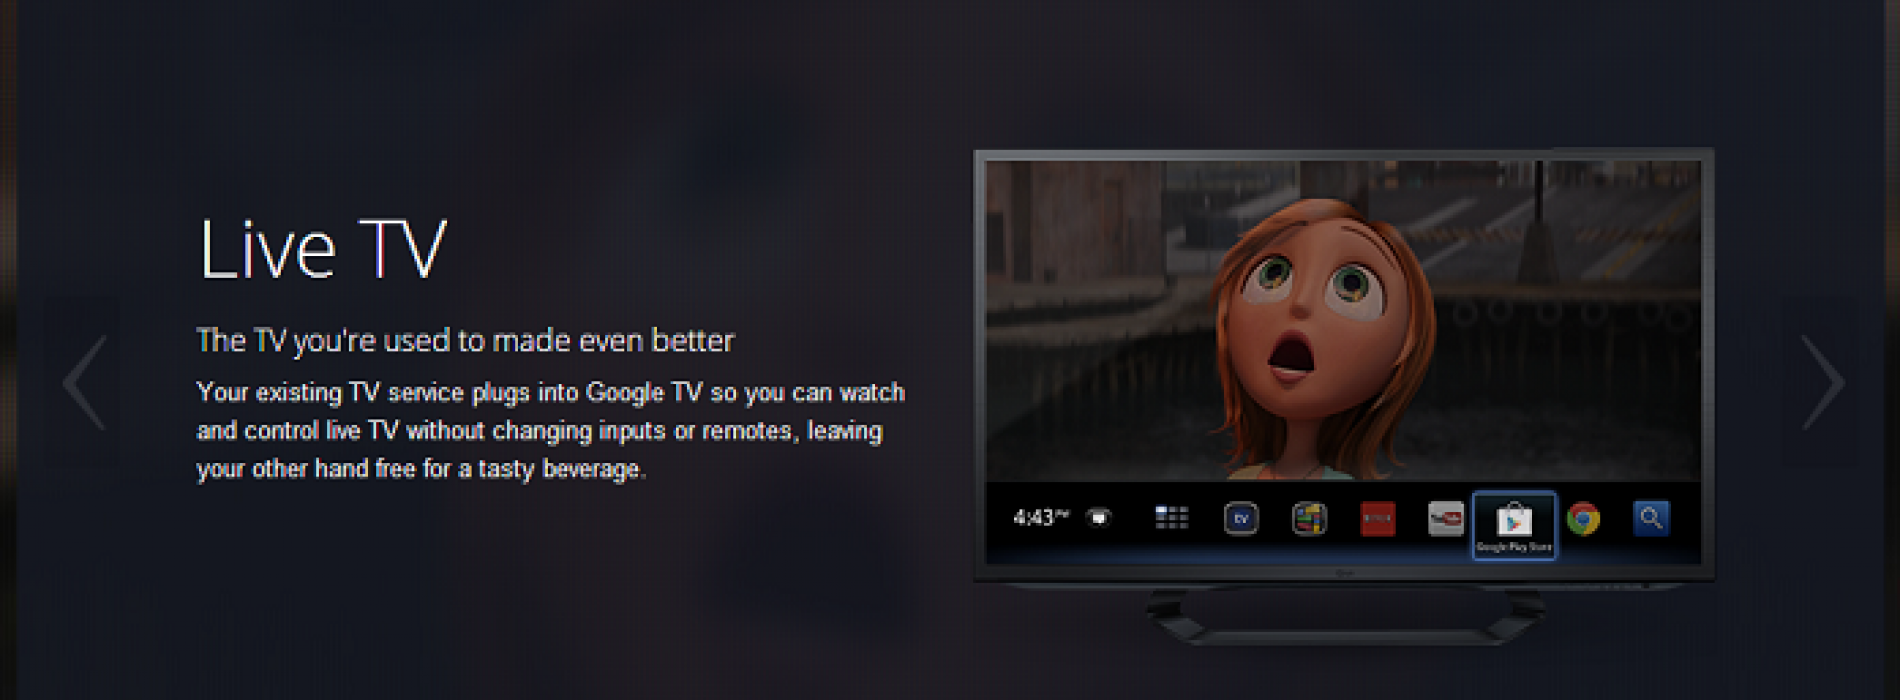 Google TV site gets revamped, Google I/O will probably see some GTV love